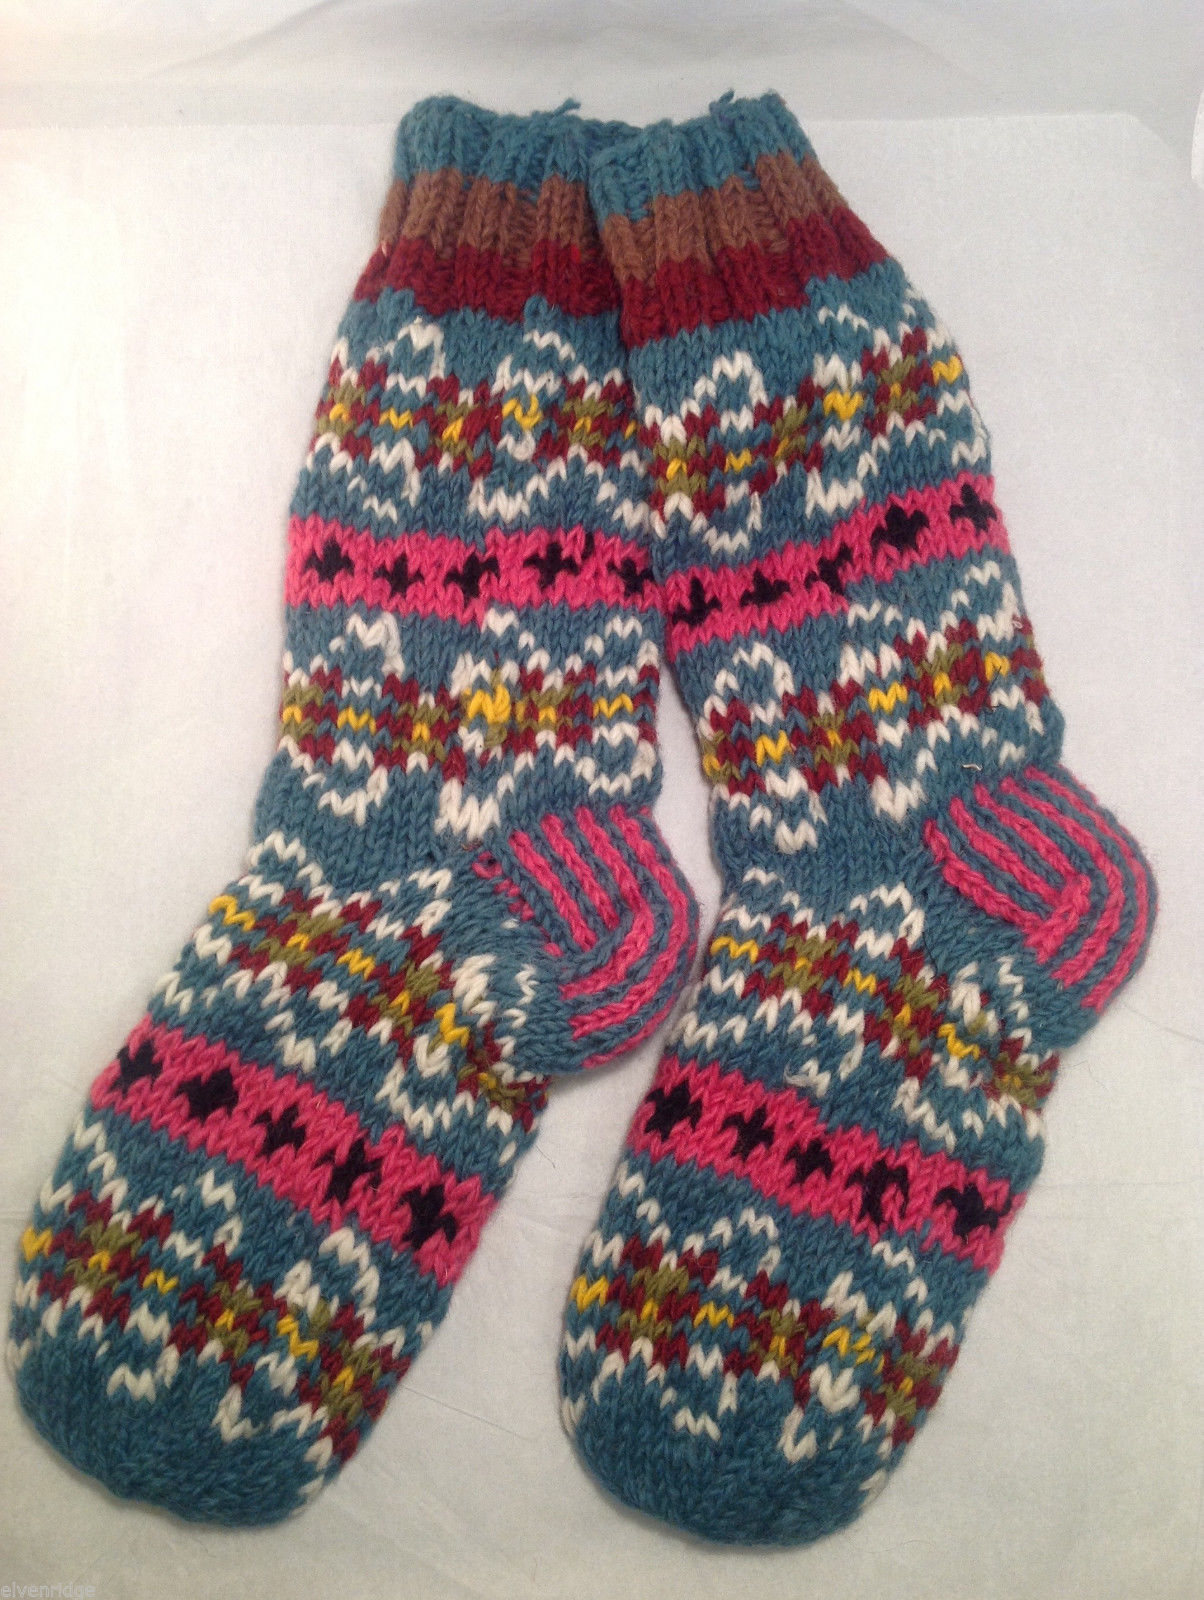 Socks Hand-Knit in Nepal Unisex Men Women Teal Blue Pink Patterned Colored